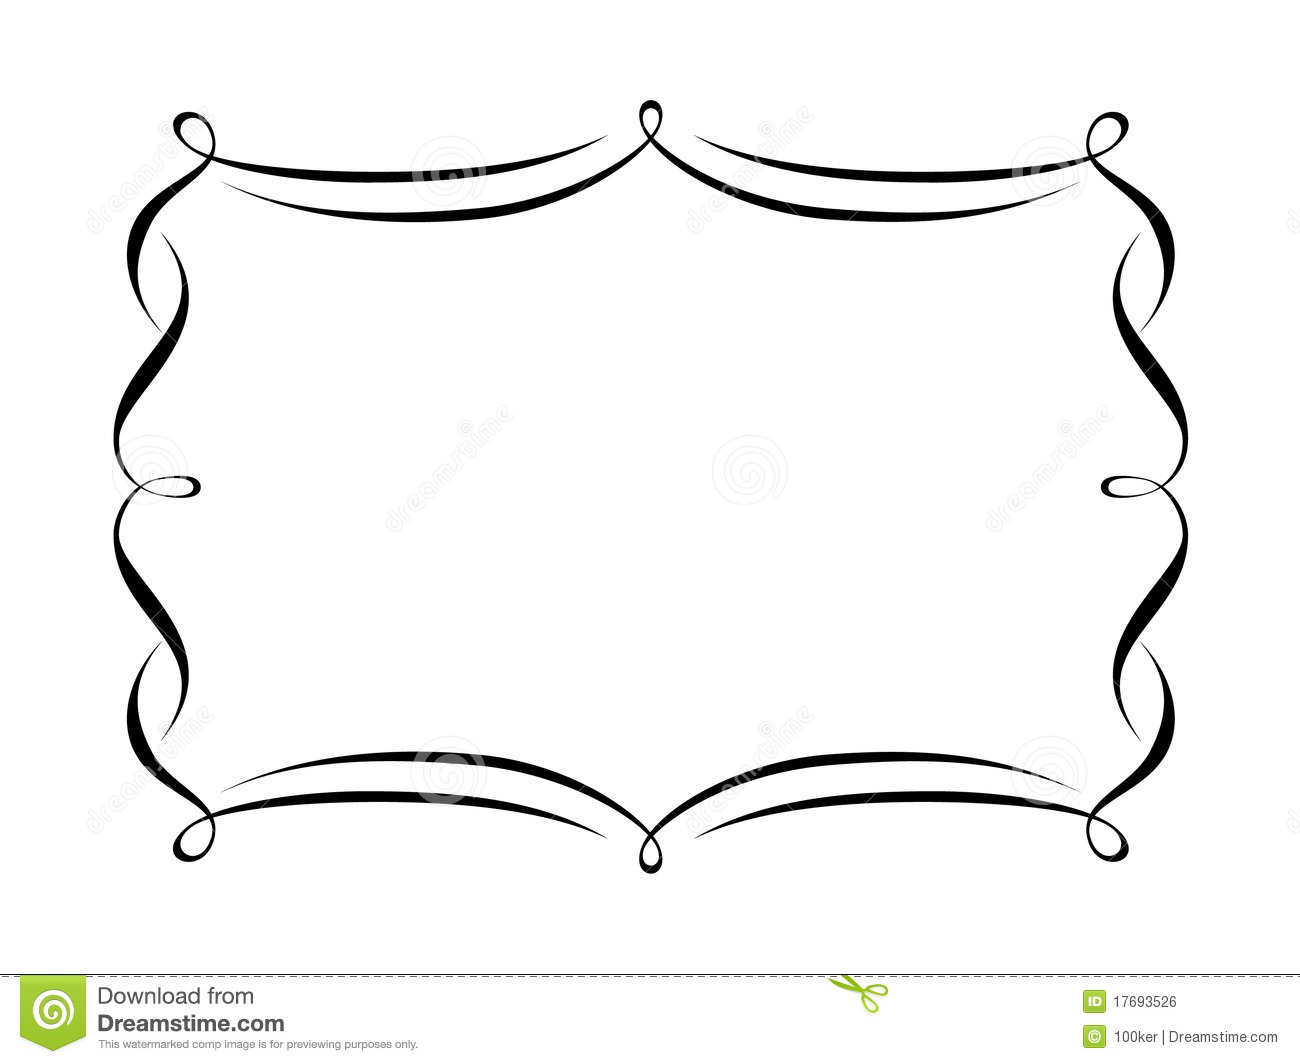 Penmanship Decorative Frame Royalty Free Stock Image ...